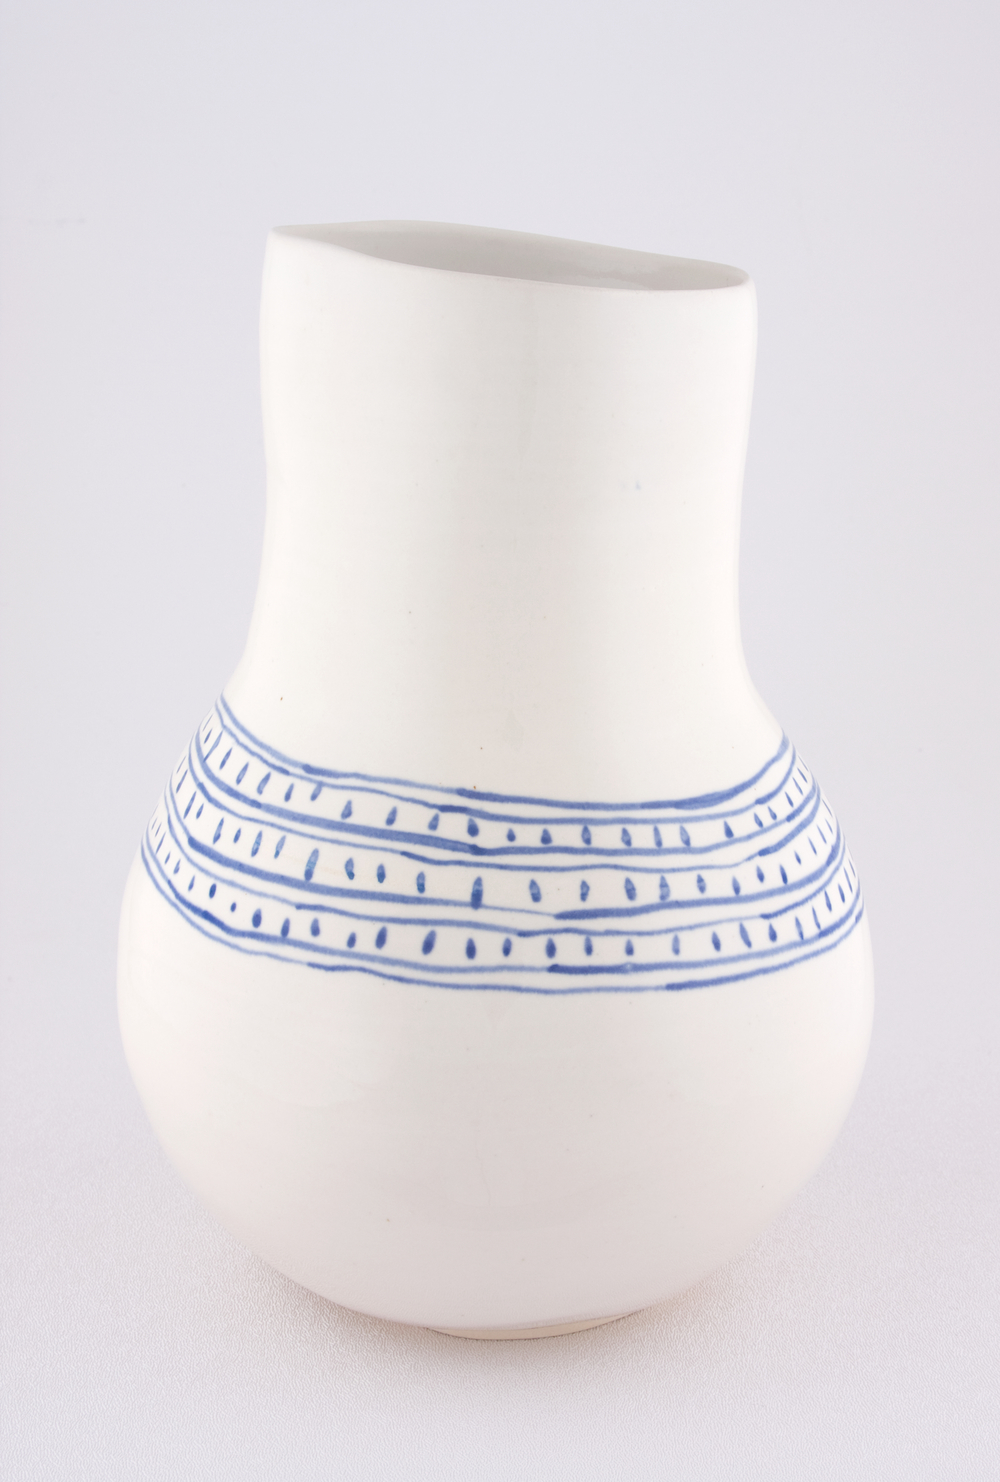 Shio Kusaka  Untitled (blue line and dot)  2009 Porcelain 9 ¾h x 7w x 7w in SK055